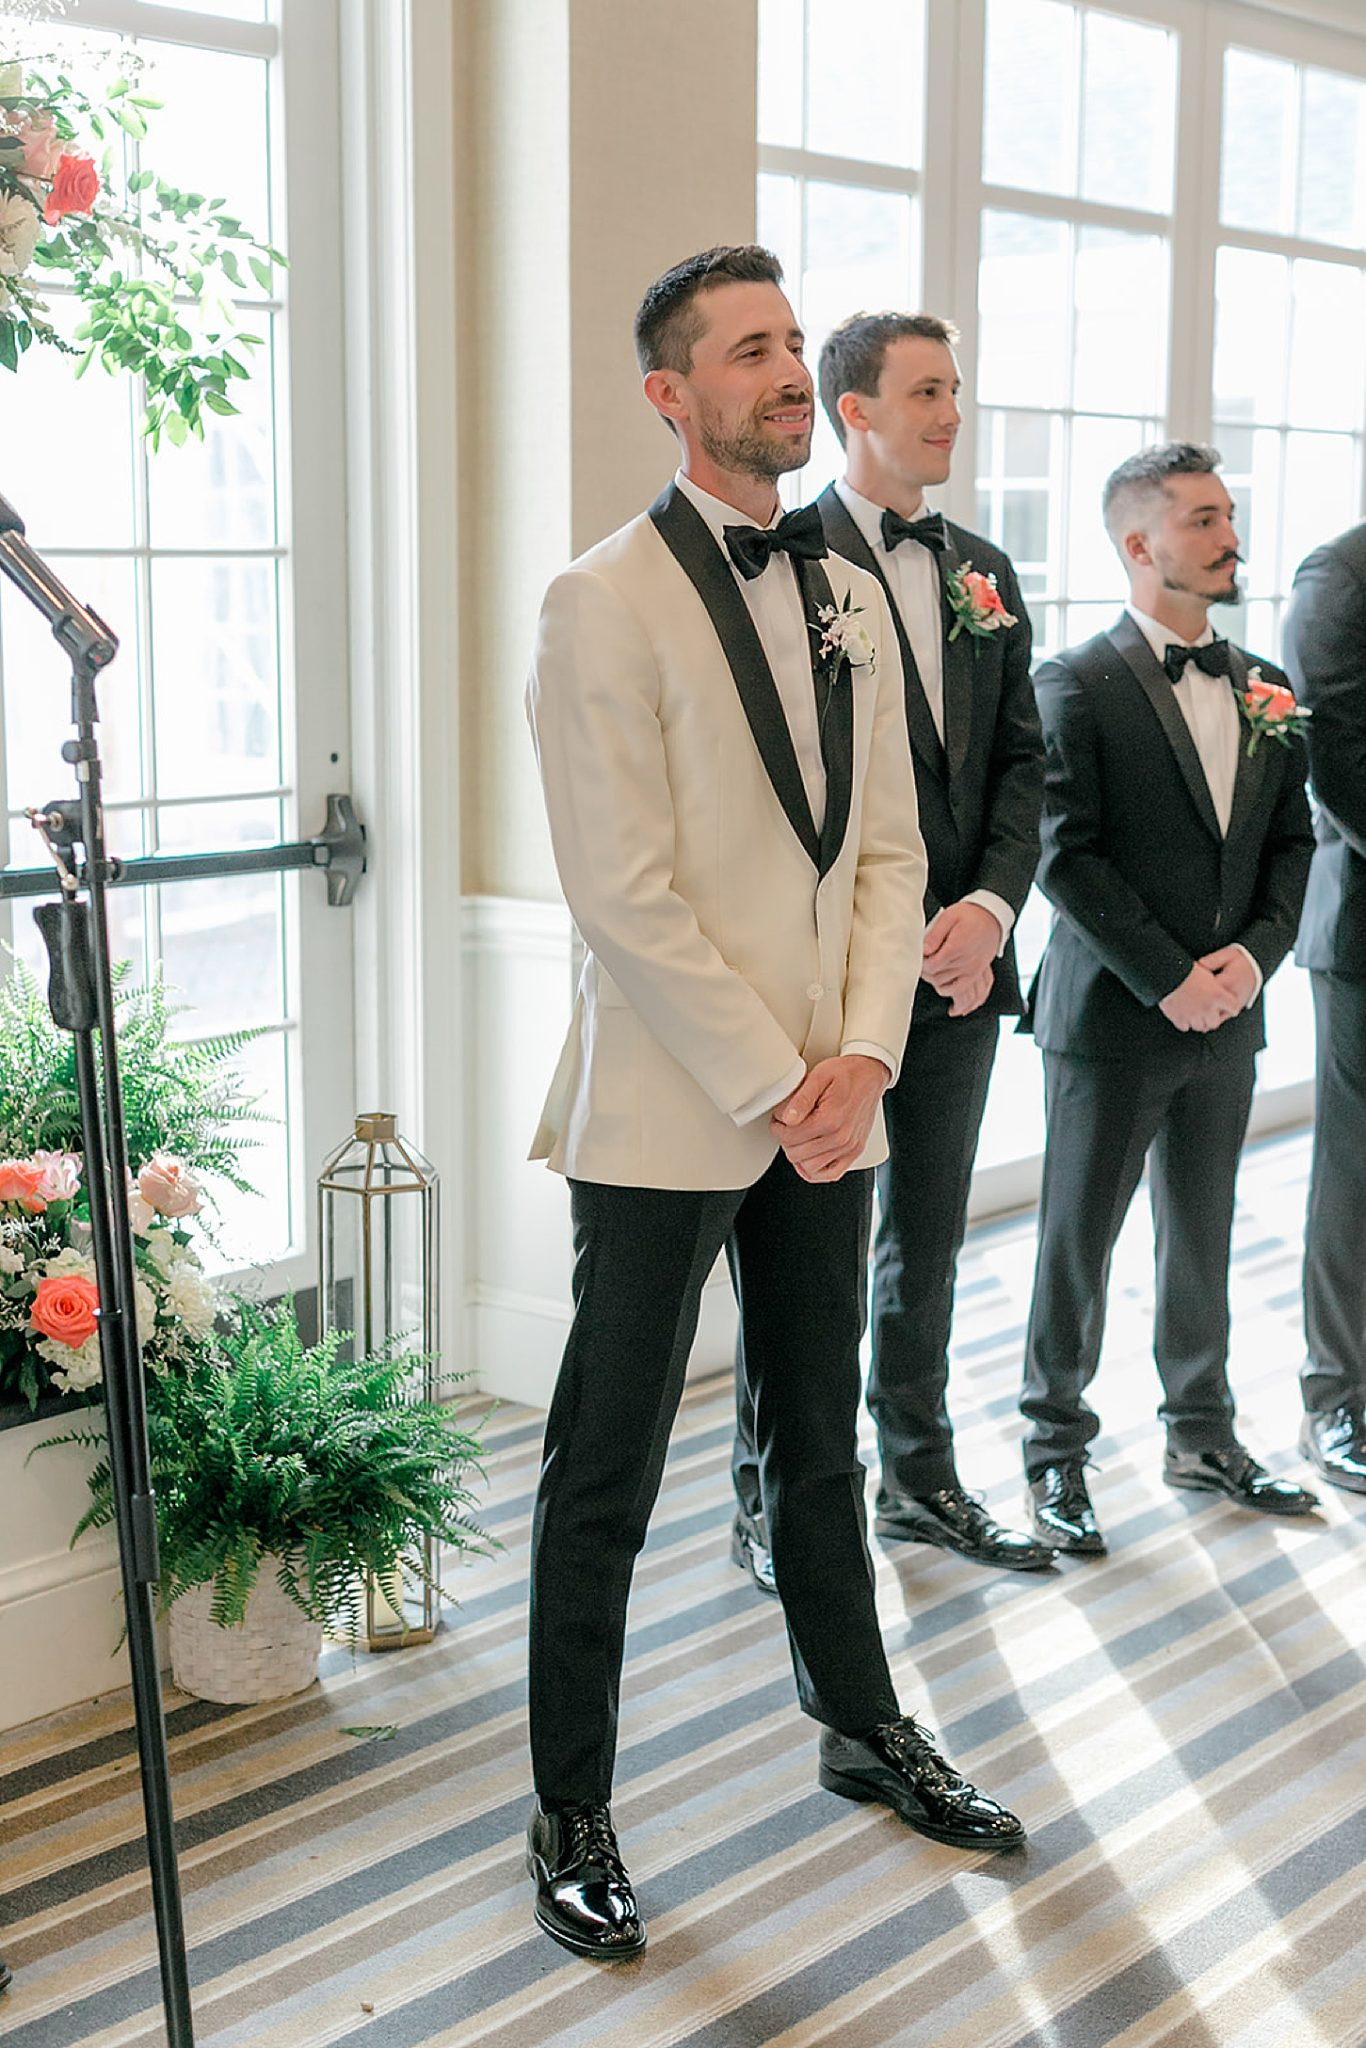 Linwood Country Club Summer Wedding Photography Studio by Magdalena Studios Jenn Kyle 0025 scaled